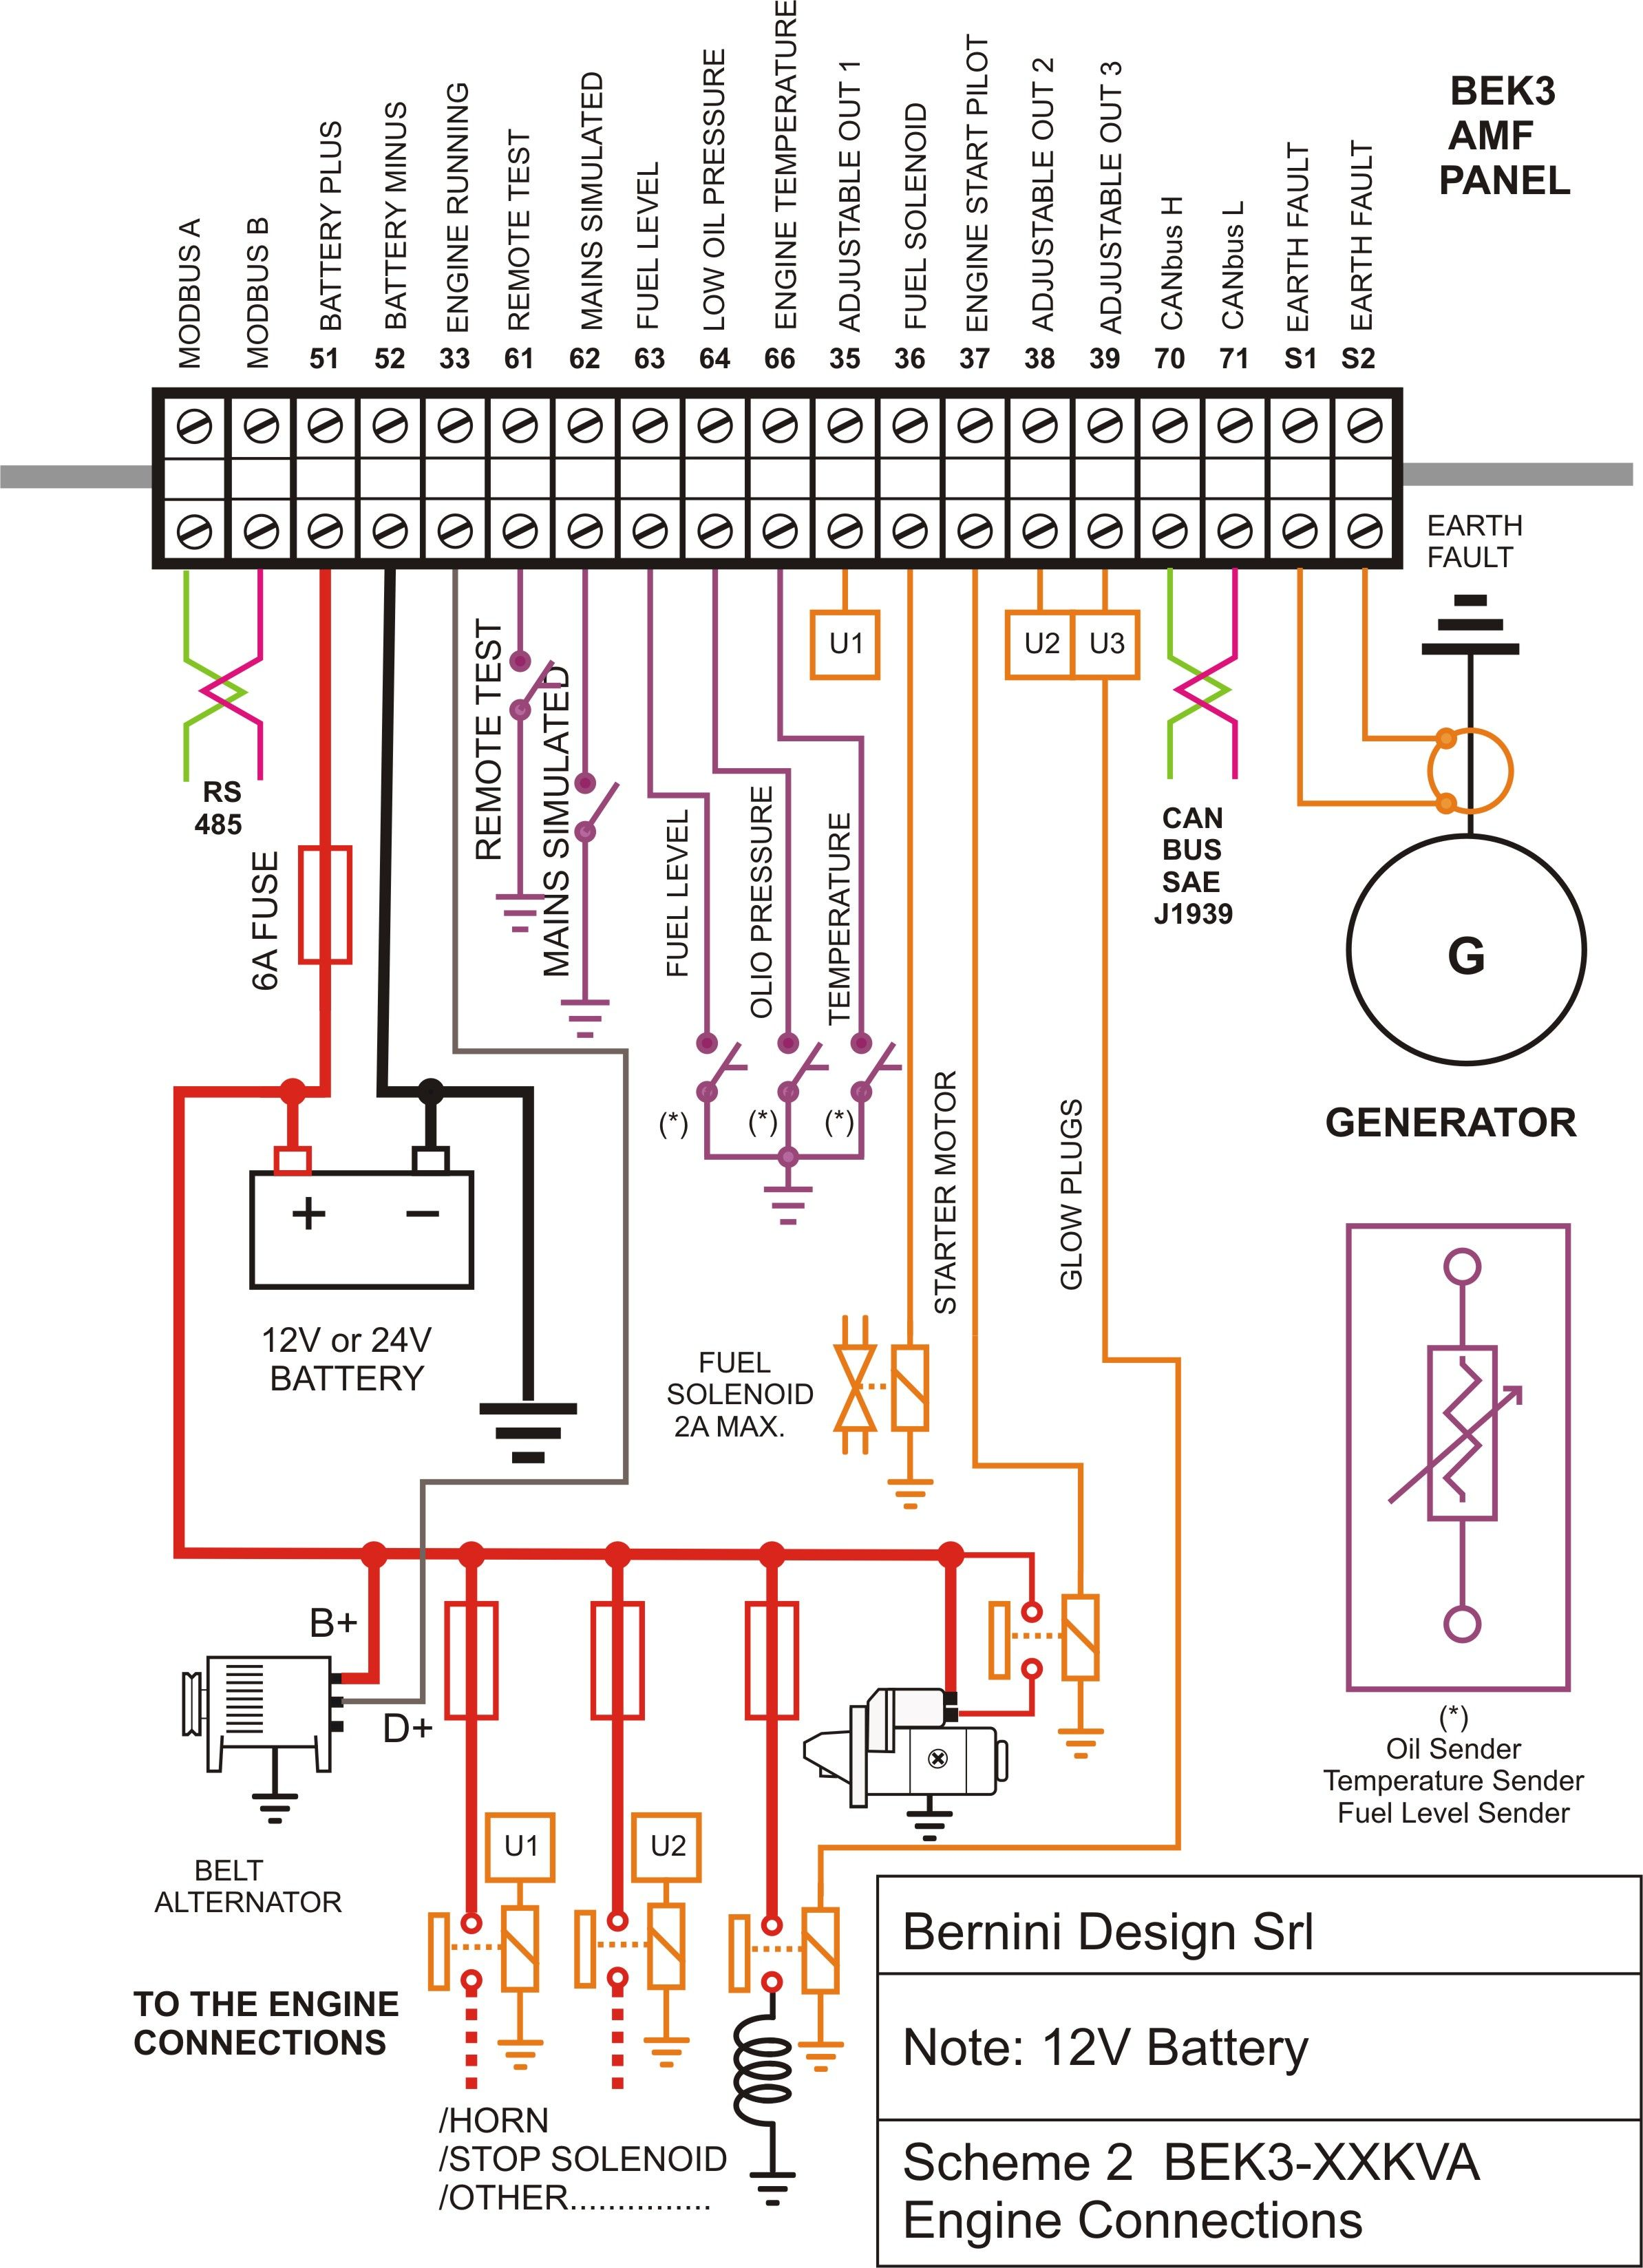 diesel generator control panel wiring diagram engine connections rh pinterest com electrical control panel wiring tutorial control panel wiring diagrams